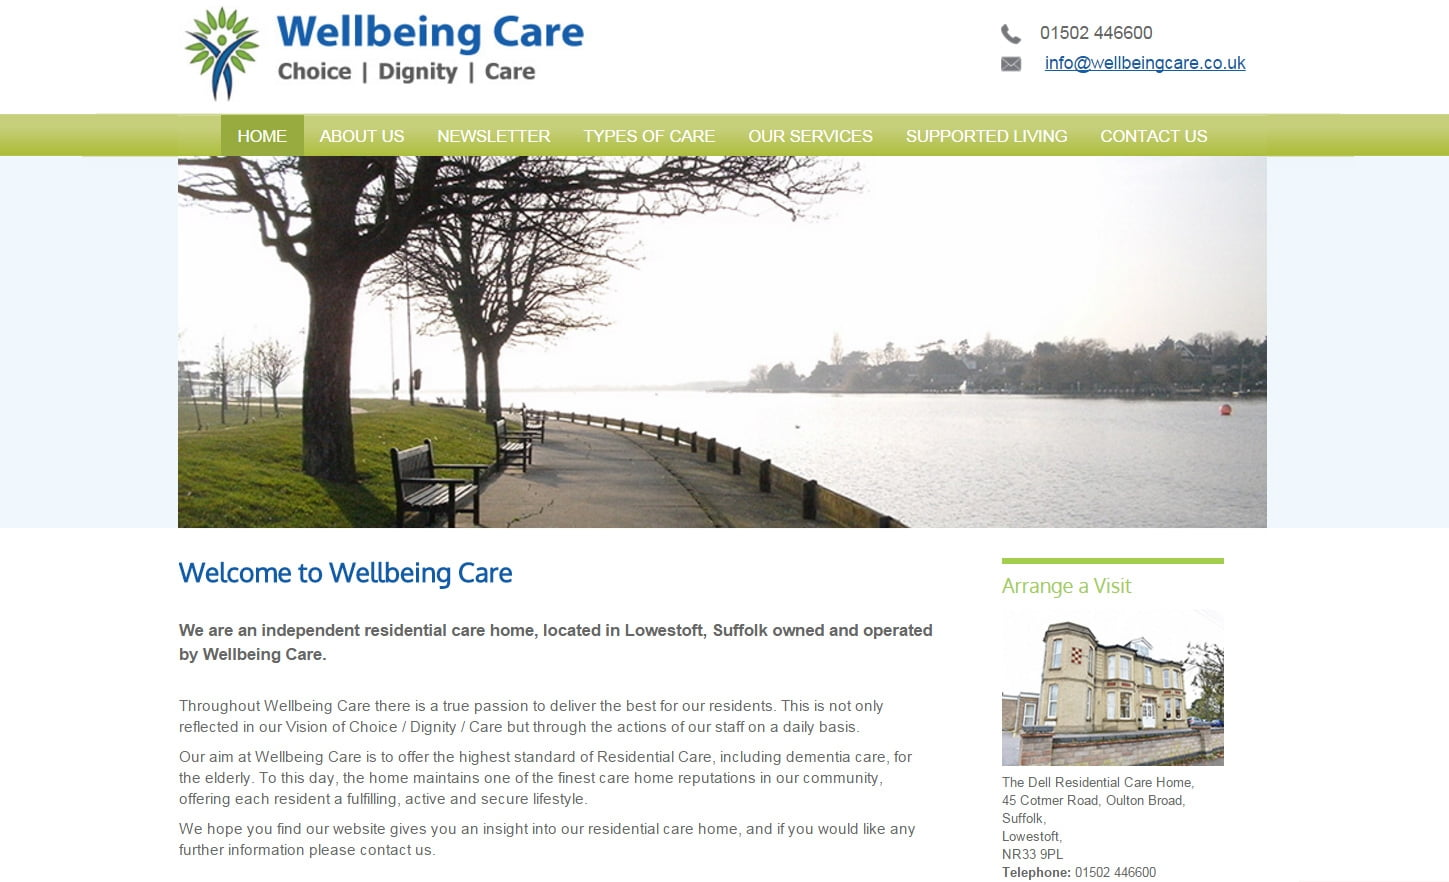 Wellbeing Care